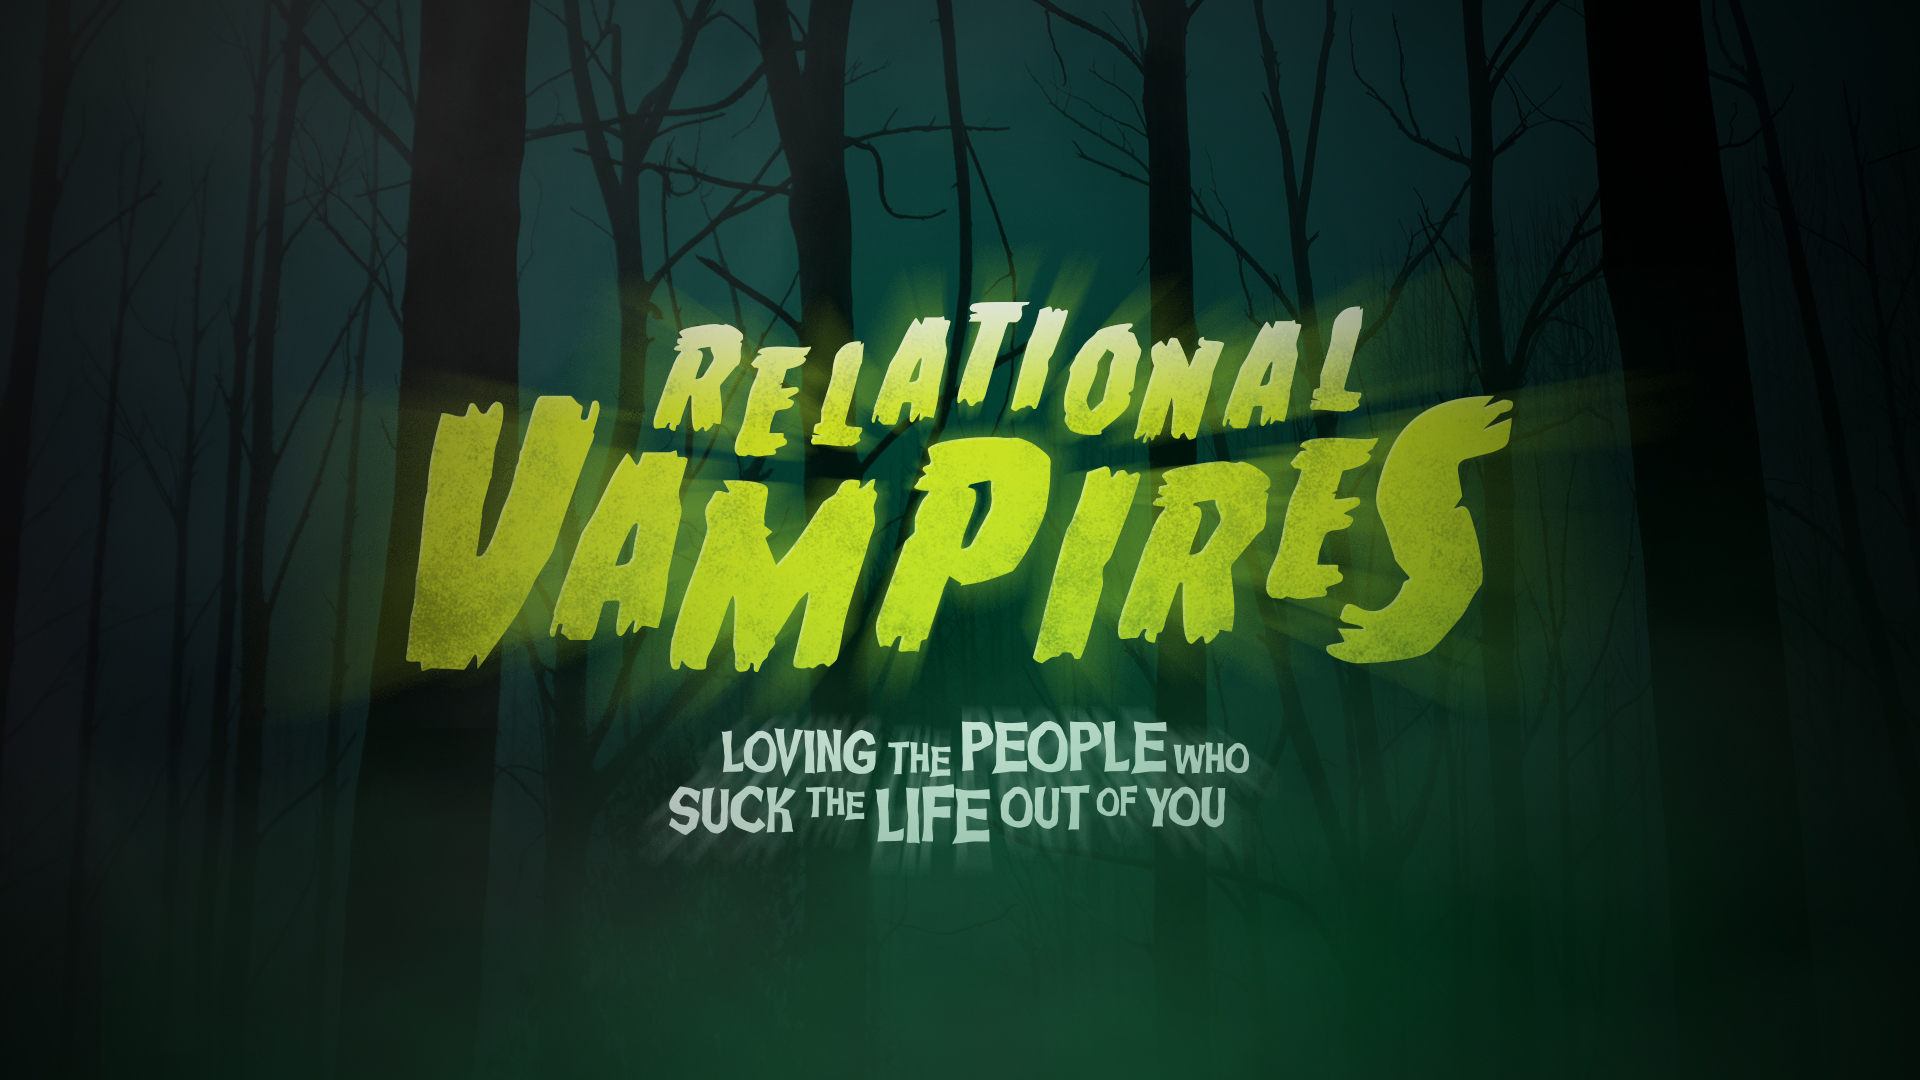 Relational Vampires – Part 4 of a 4 Part Series